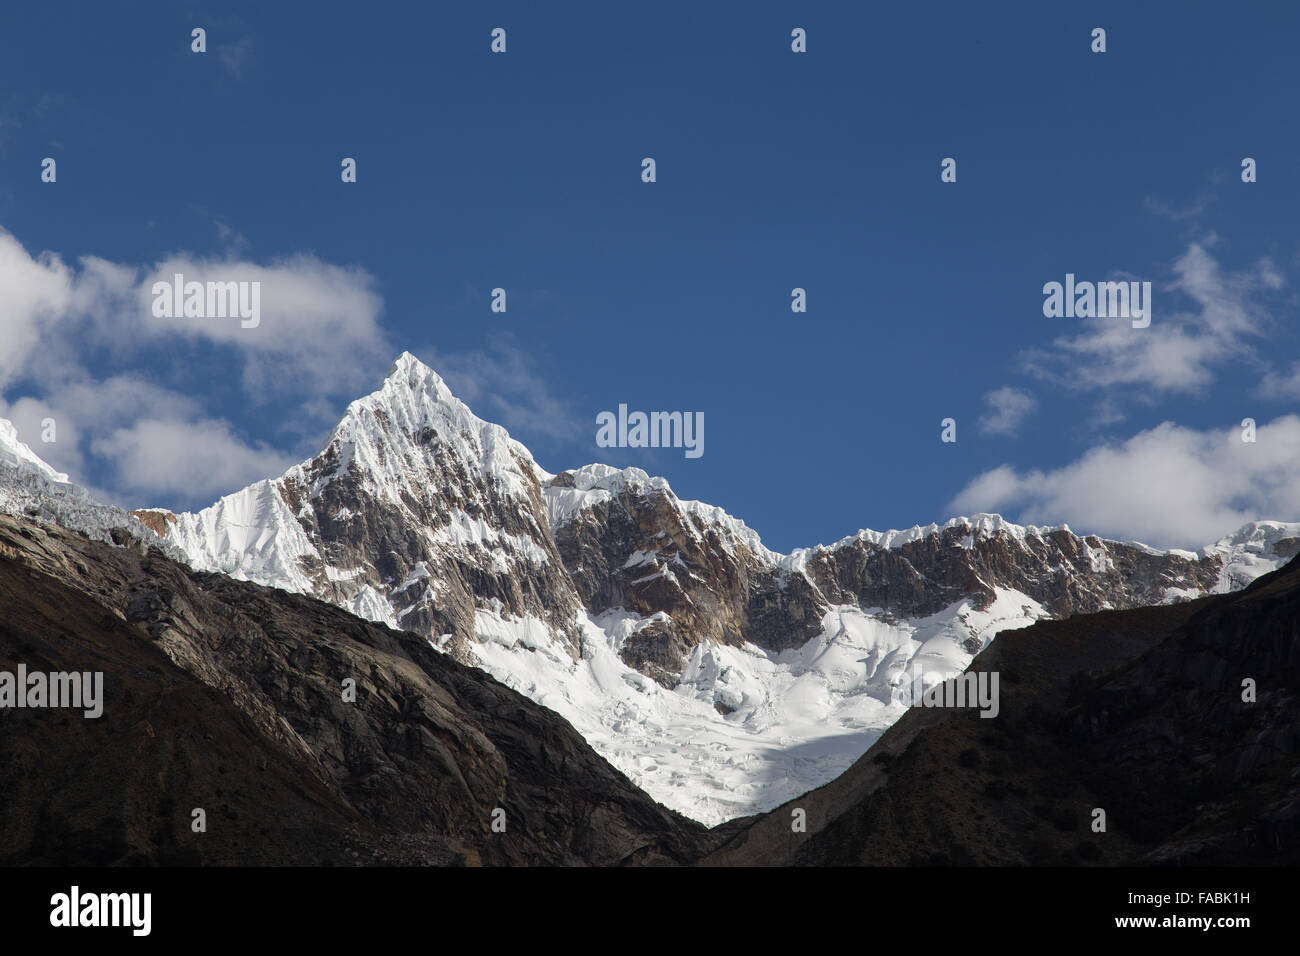 Mount Artesonraju in Peru also known as Paramount Pictures mountain. - Stock Image